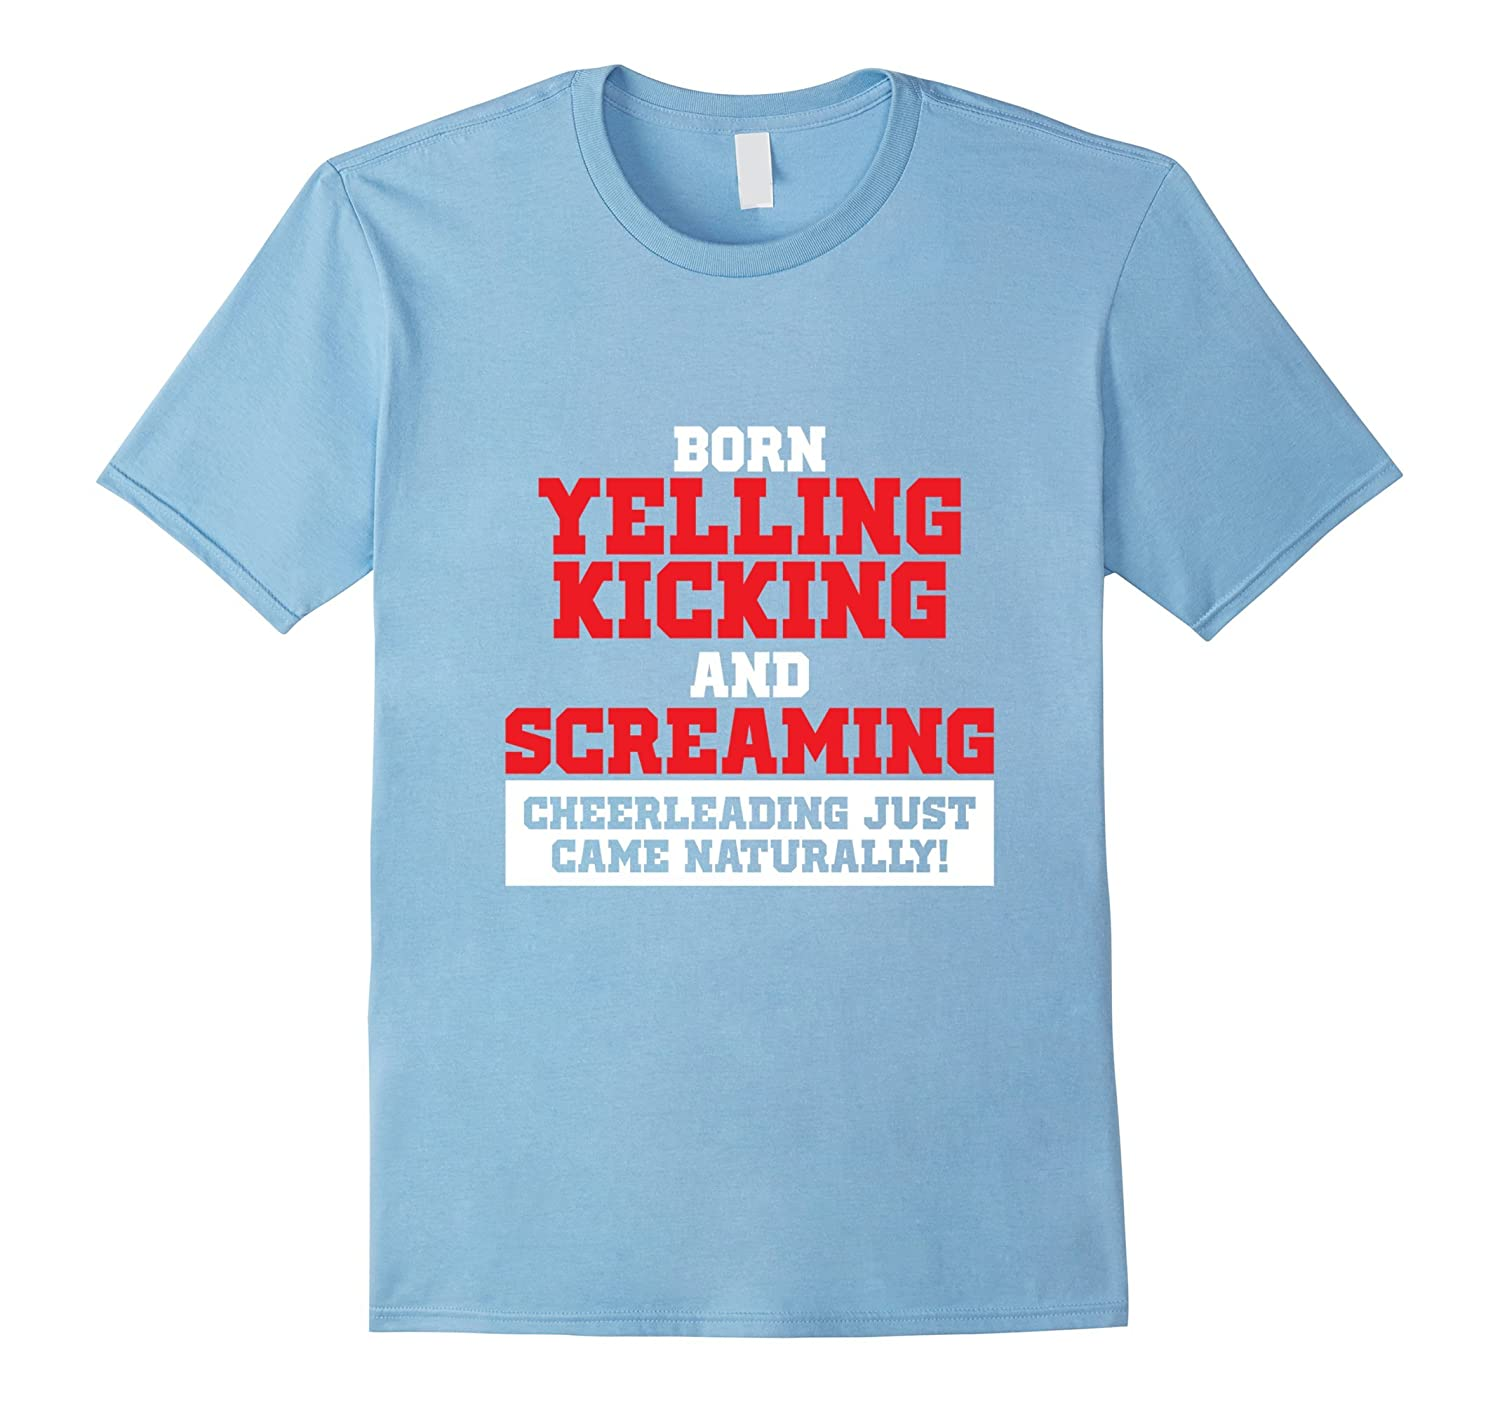 Funny Cheerleading Shirt for Girls | Cheerleading Tee-fa